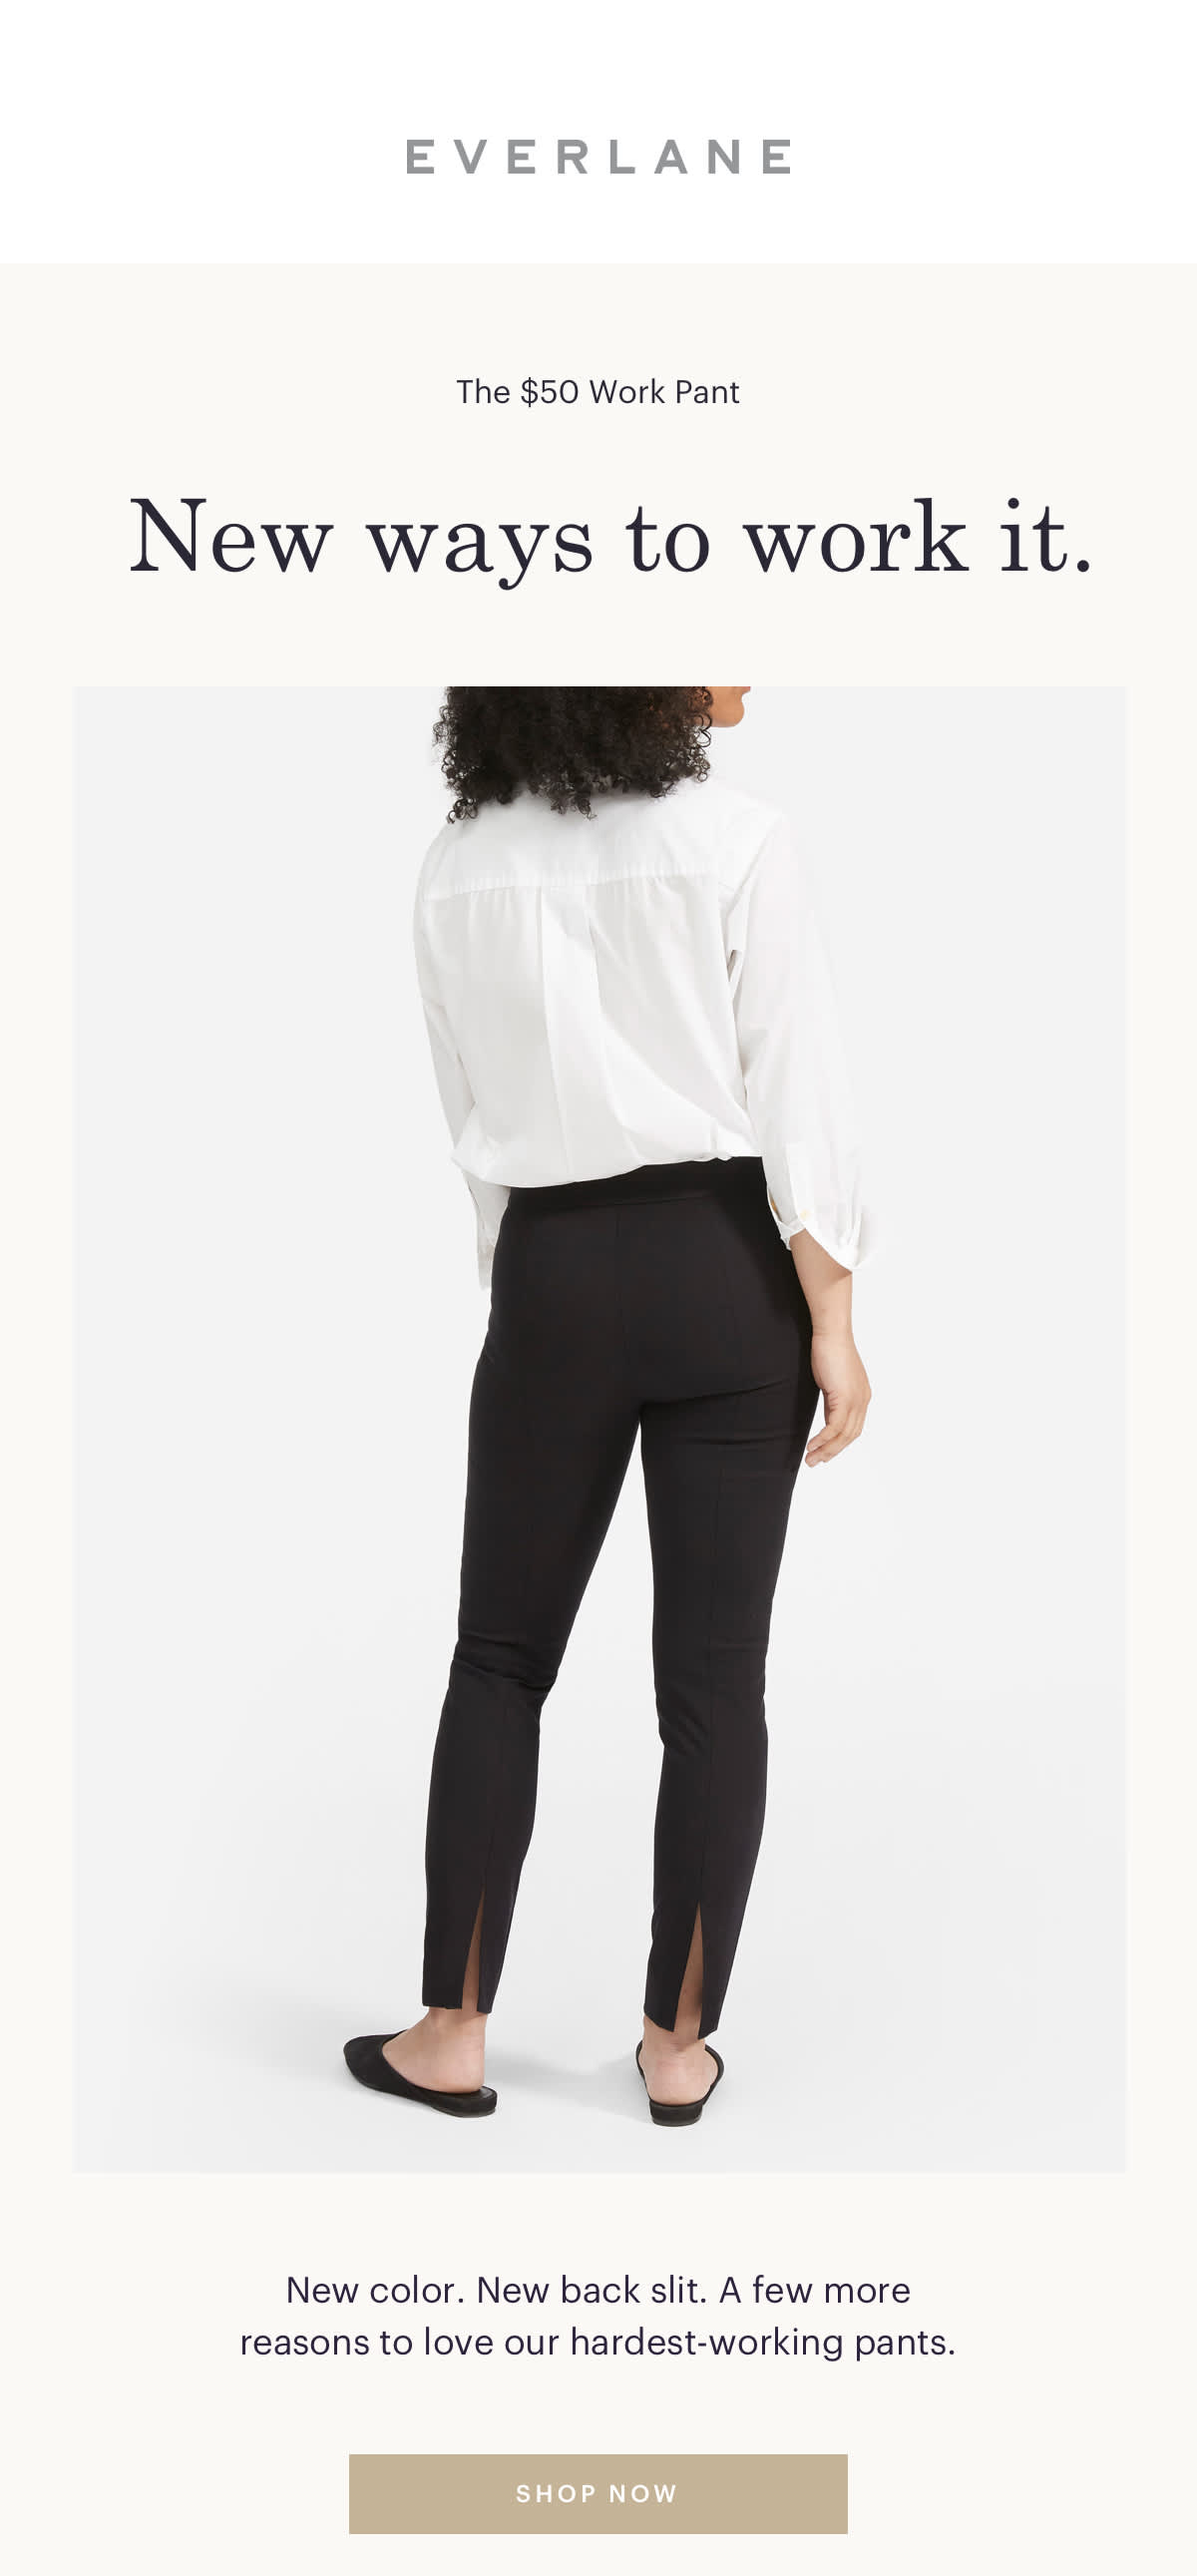 The $50 Work Pant